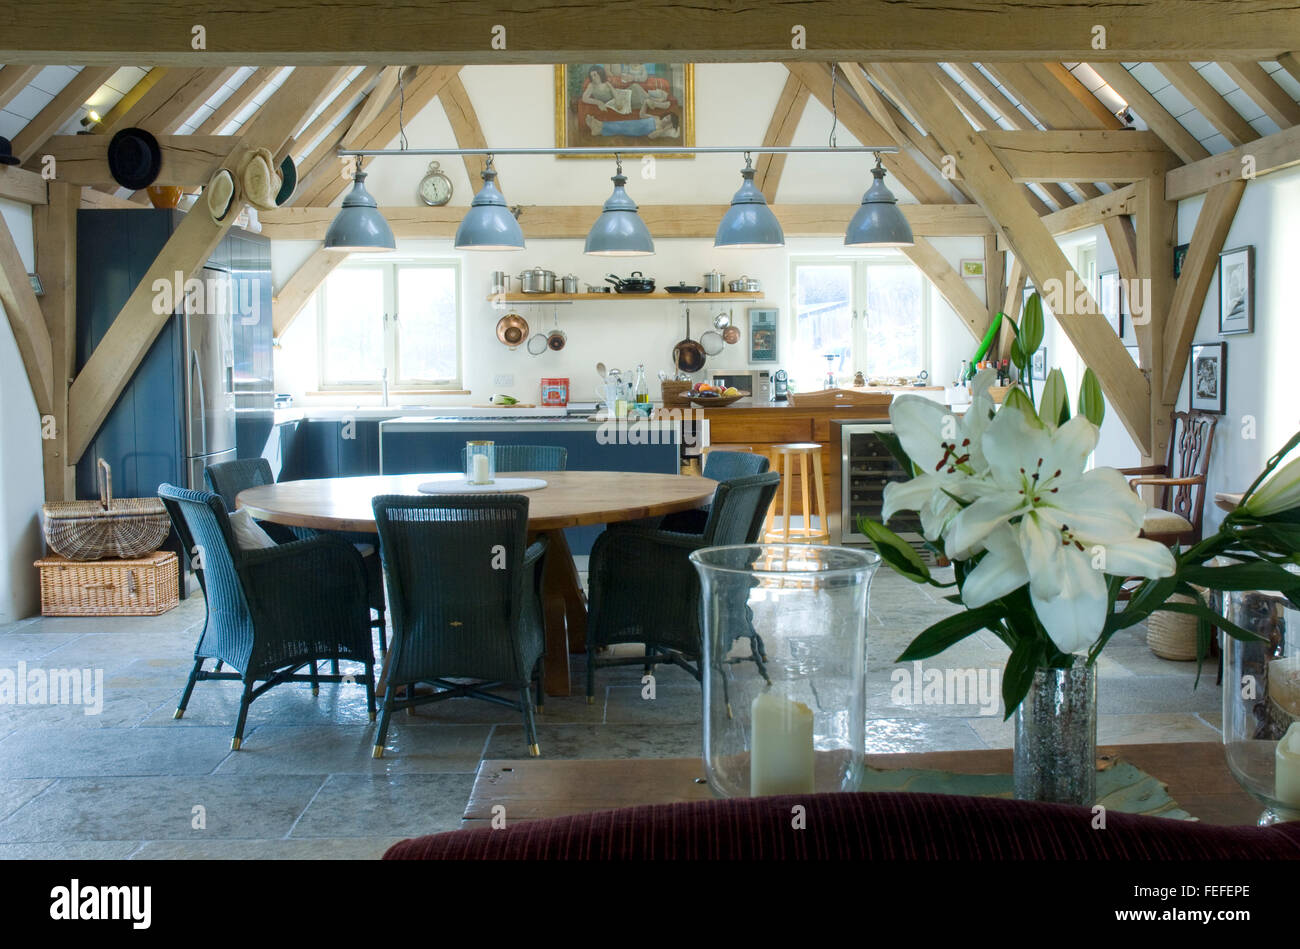 Kitchen in Barn conversion, dining area, downlights. - Stock Image